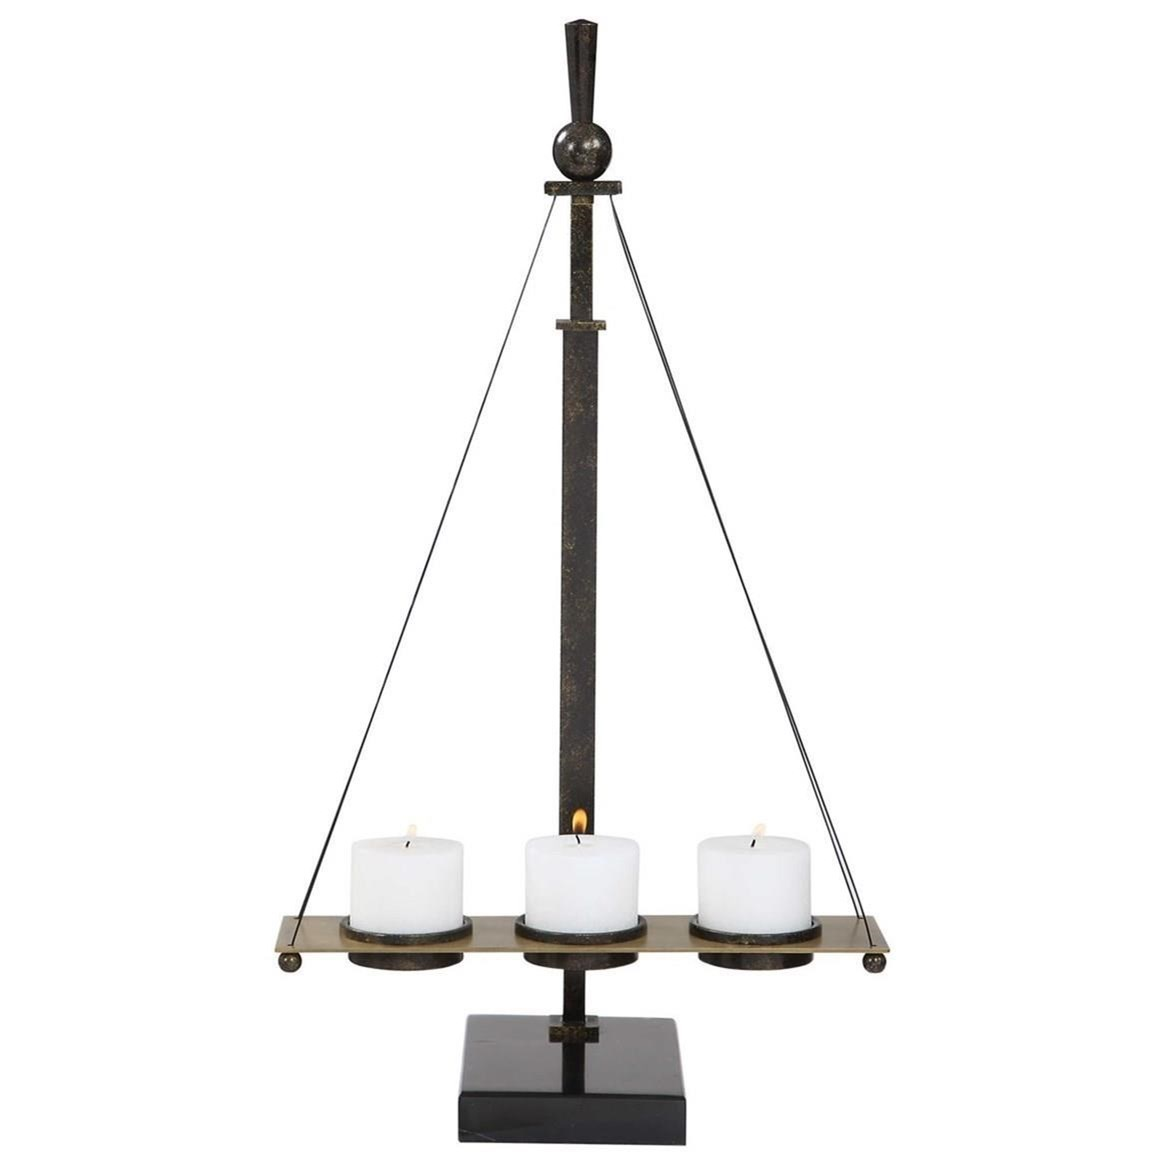 Accessories - Candle Holders Breckenridge Candleholder by Uttermost at Dunk & Bright Furniture